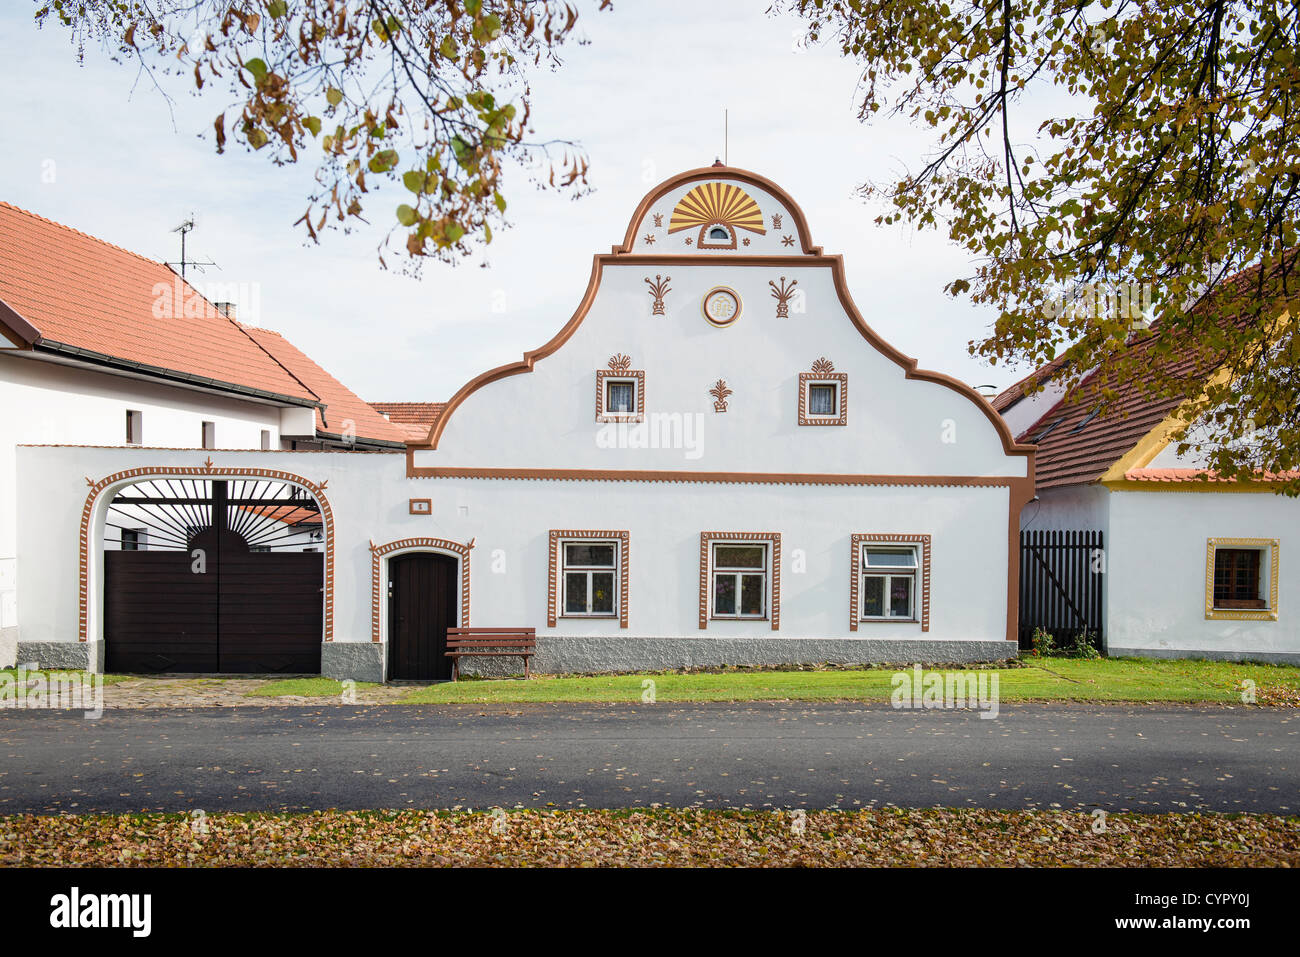 Holasovice - facade of historical house in Telc, UNESCO world heritage site, South Bohemia, Czech Republic - Stock Image